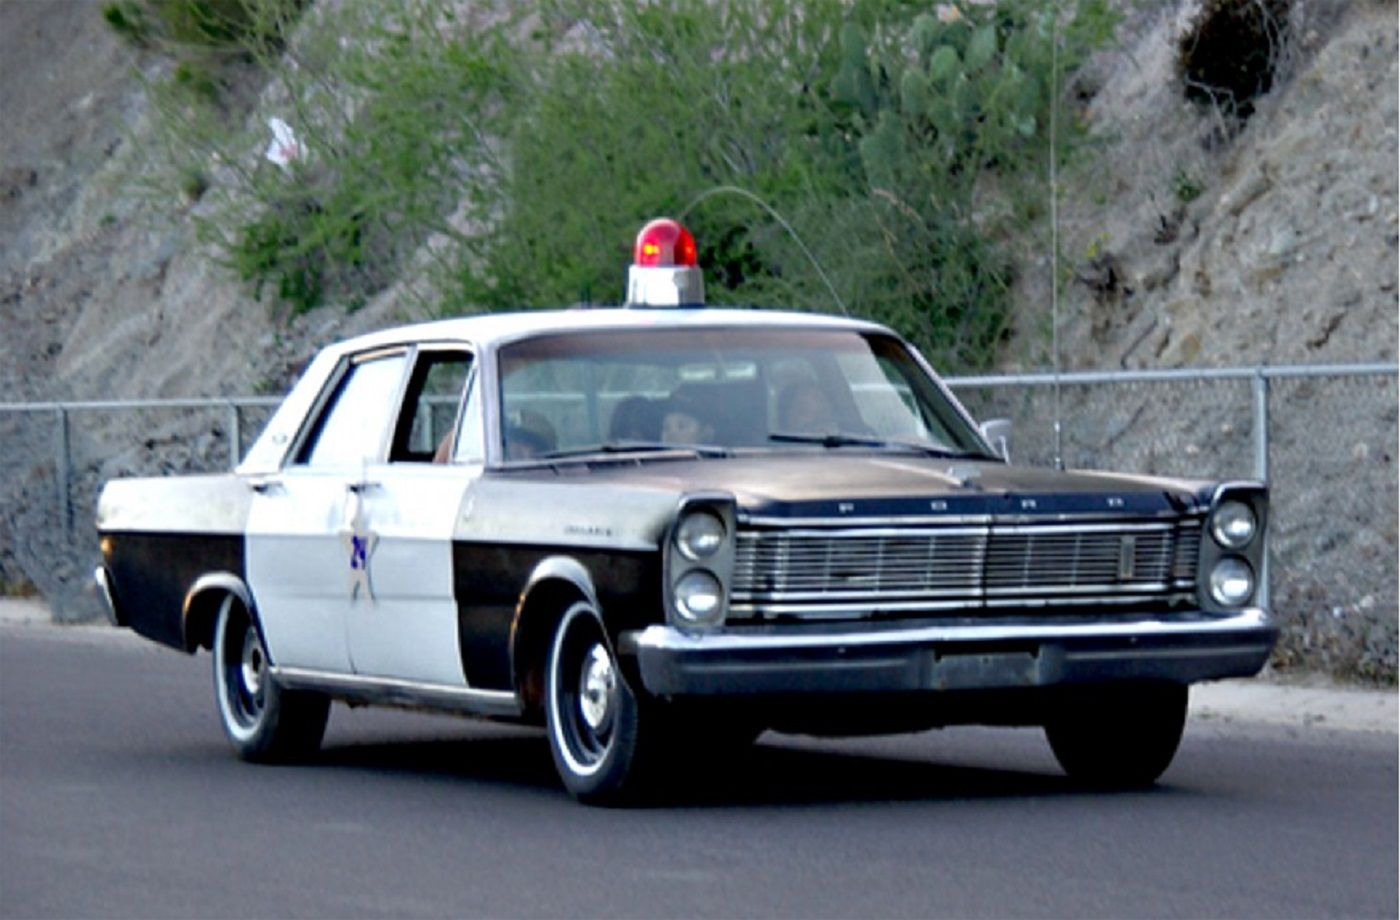 1965 Ford Galaxie Police Car